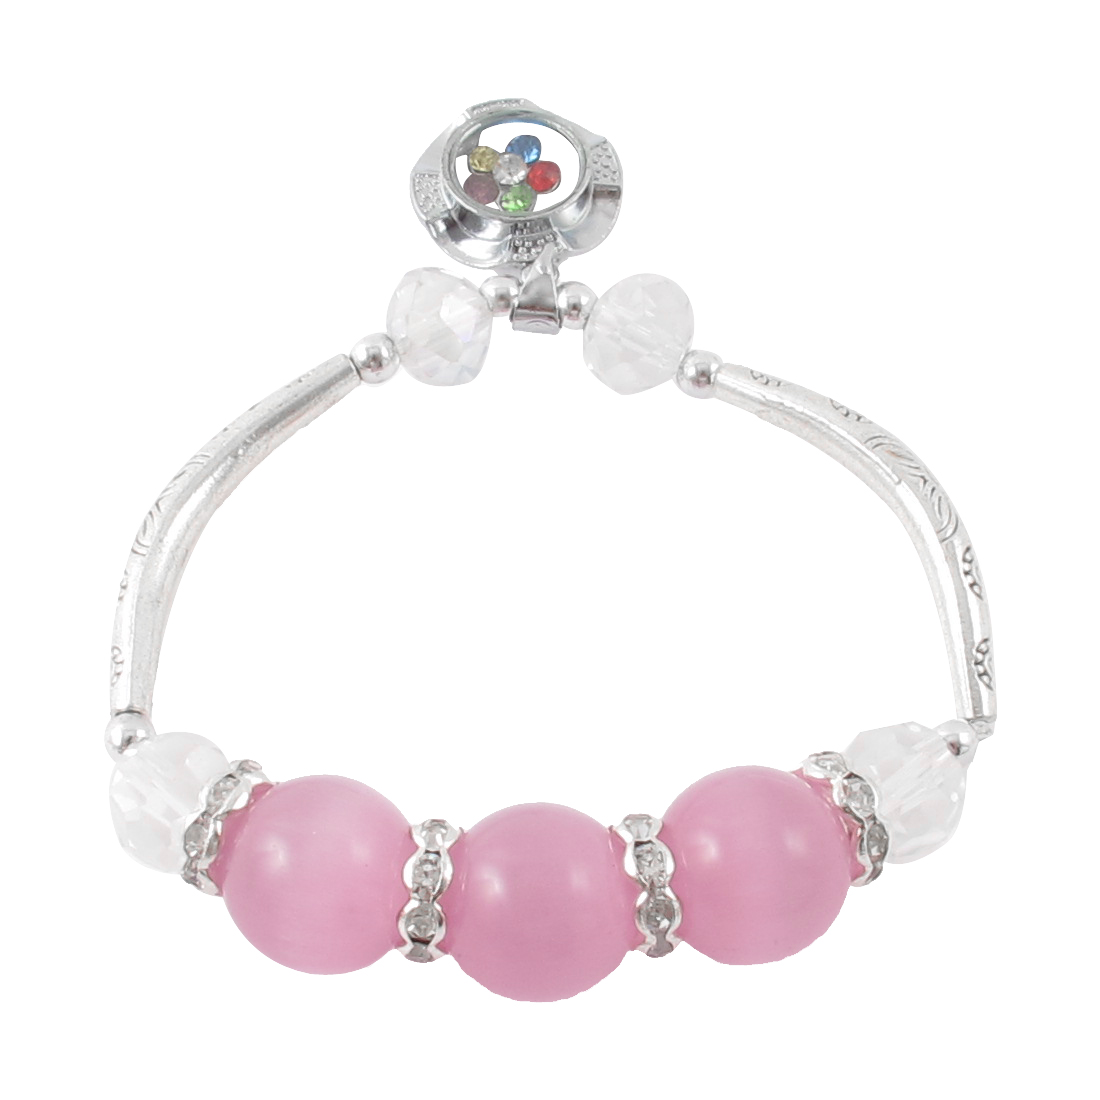 Lady Faux Cat Eyes Stone Detail Stretchy Beading Wrist Bracelet Pink